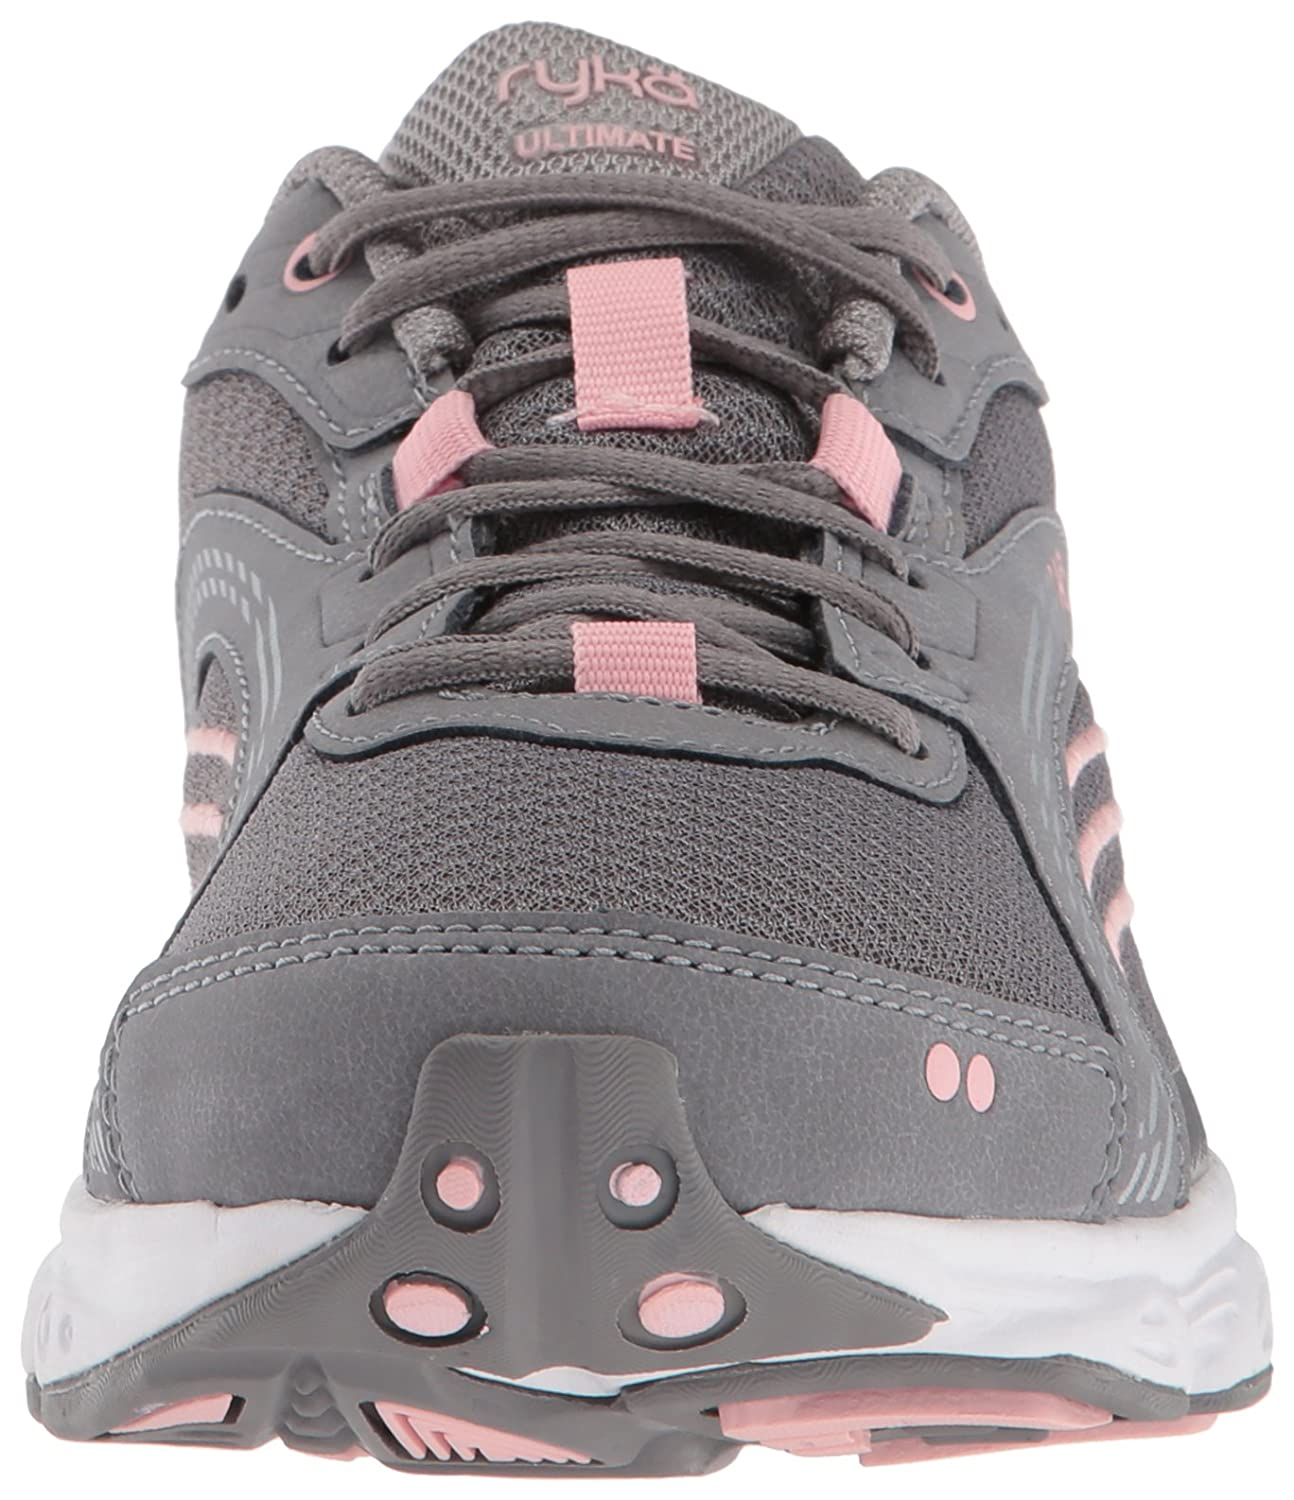 Ryka Women's Ultimate Running Shoe B0757CXYS9 10 W US|Frost Grey/English Rose/Chrome Silver